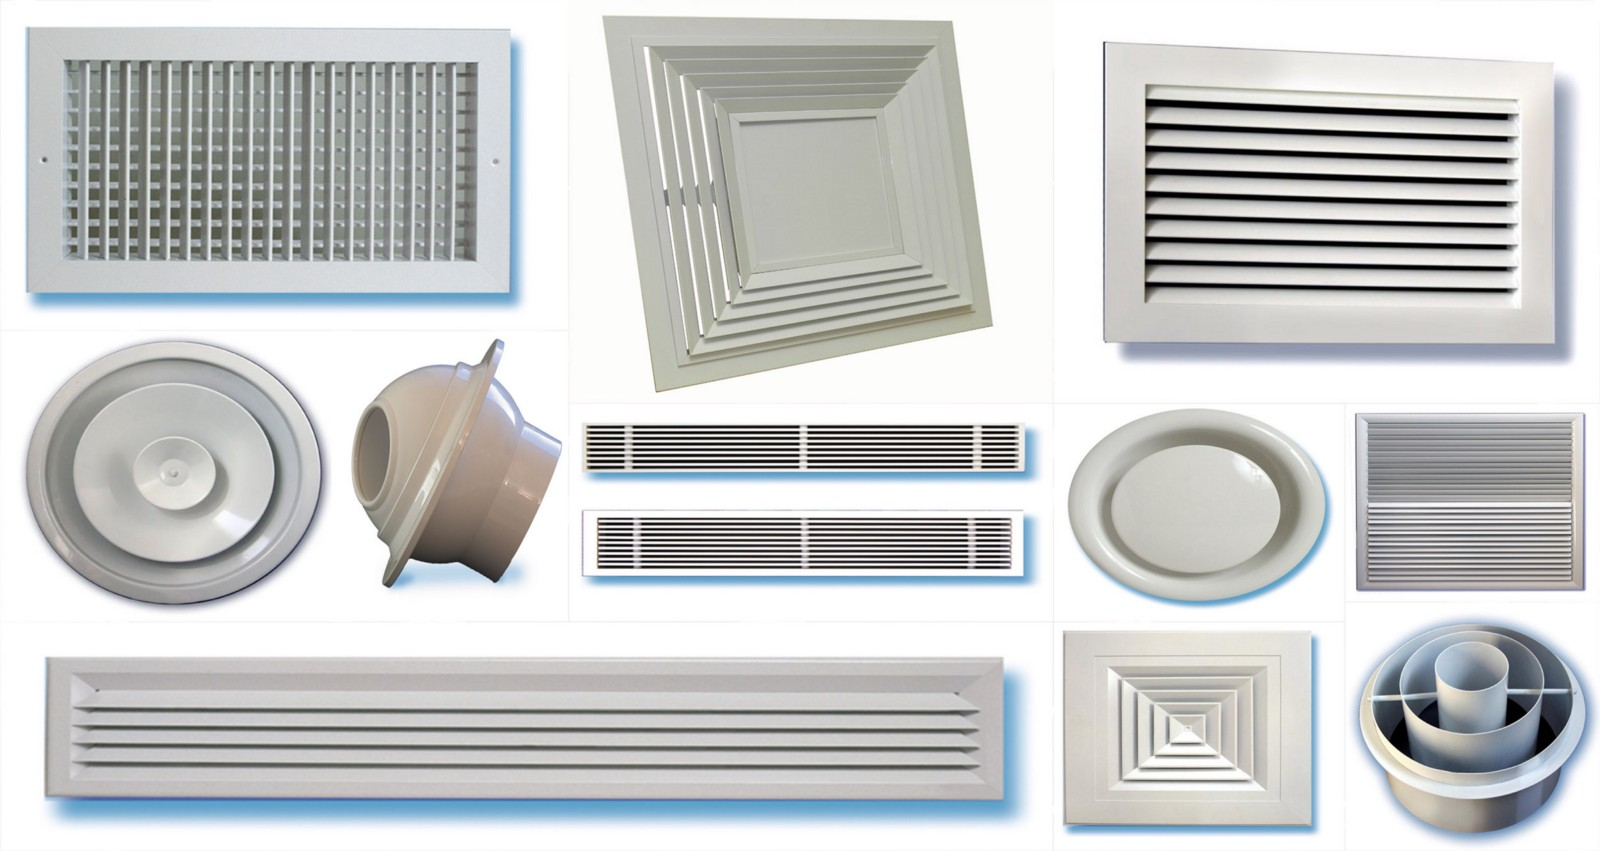 Construction And Types Of Grille And Diffusers Clare